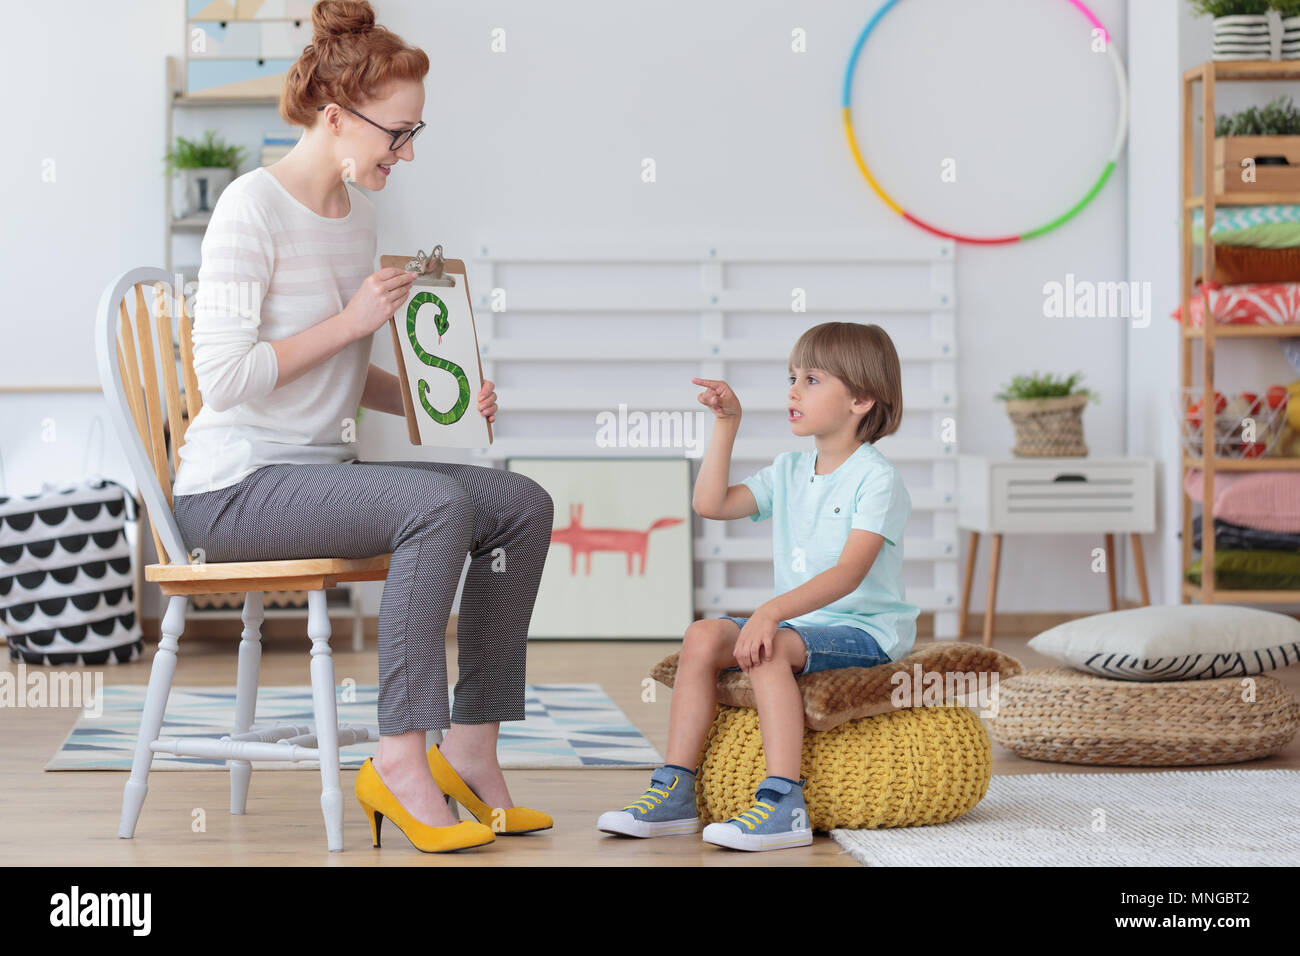 Boy sitting on a yellow pouf practicing correct